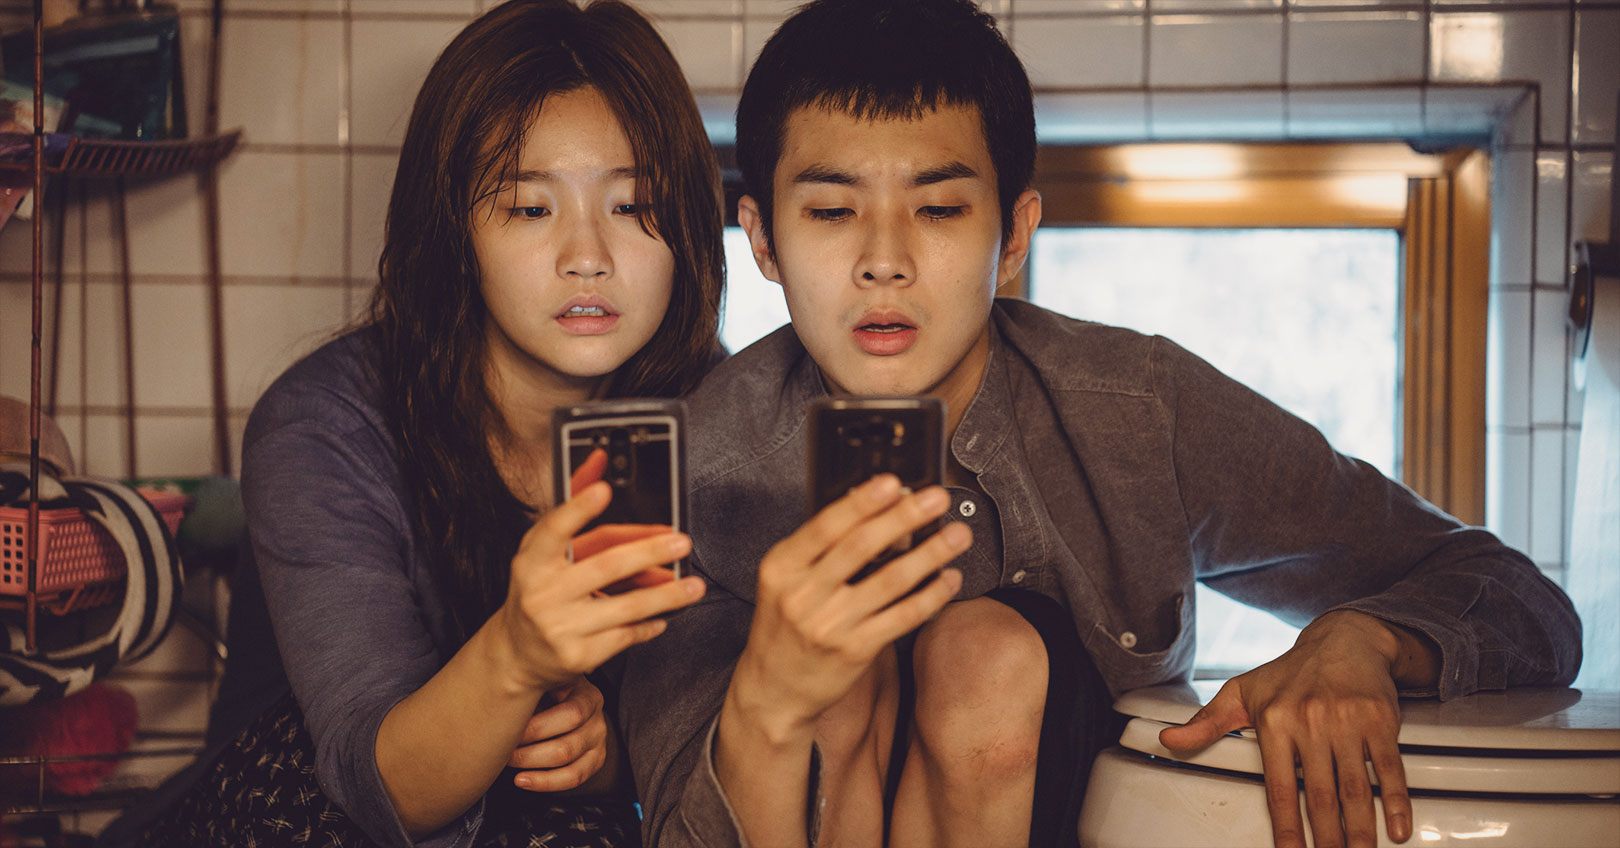 Parasite - Park So-dam and Choi Woo-sik